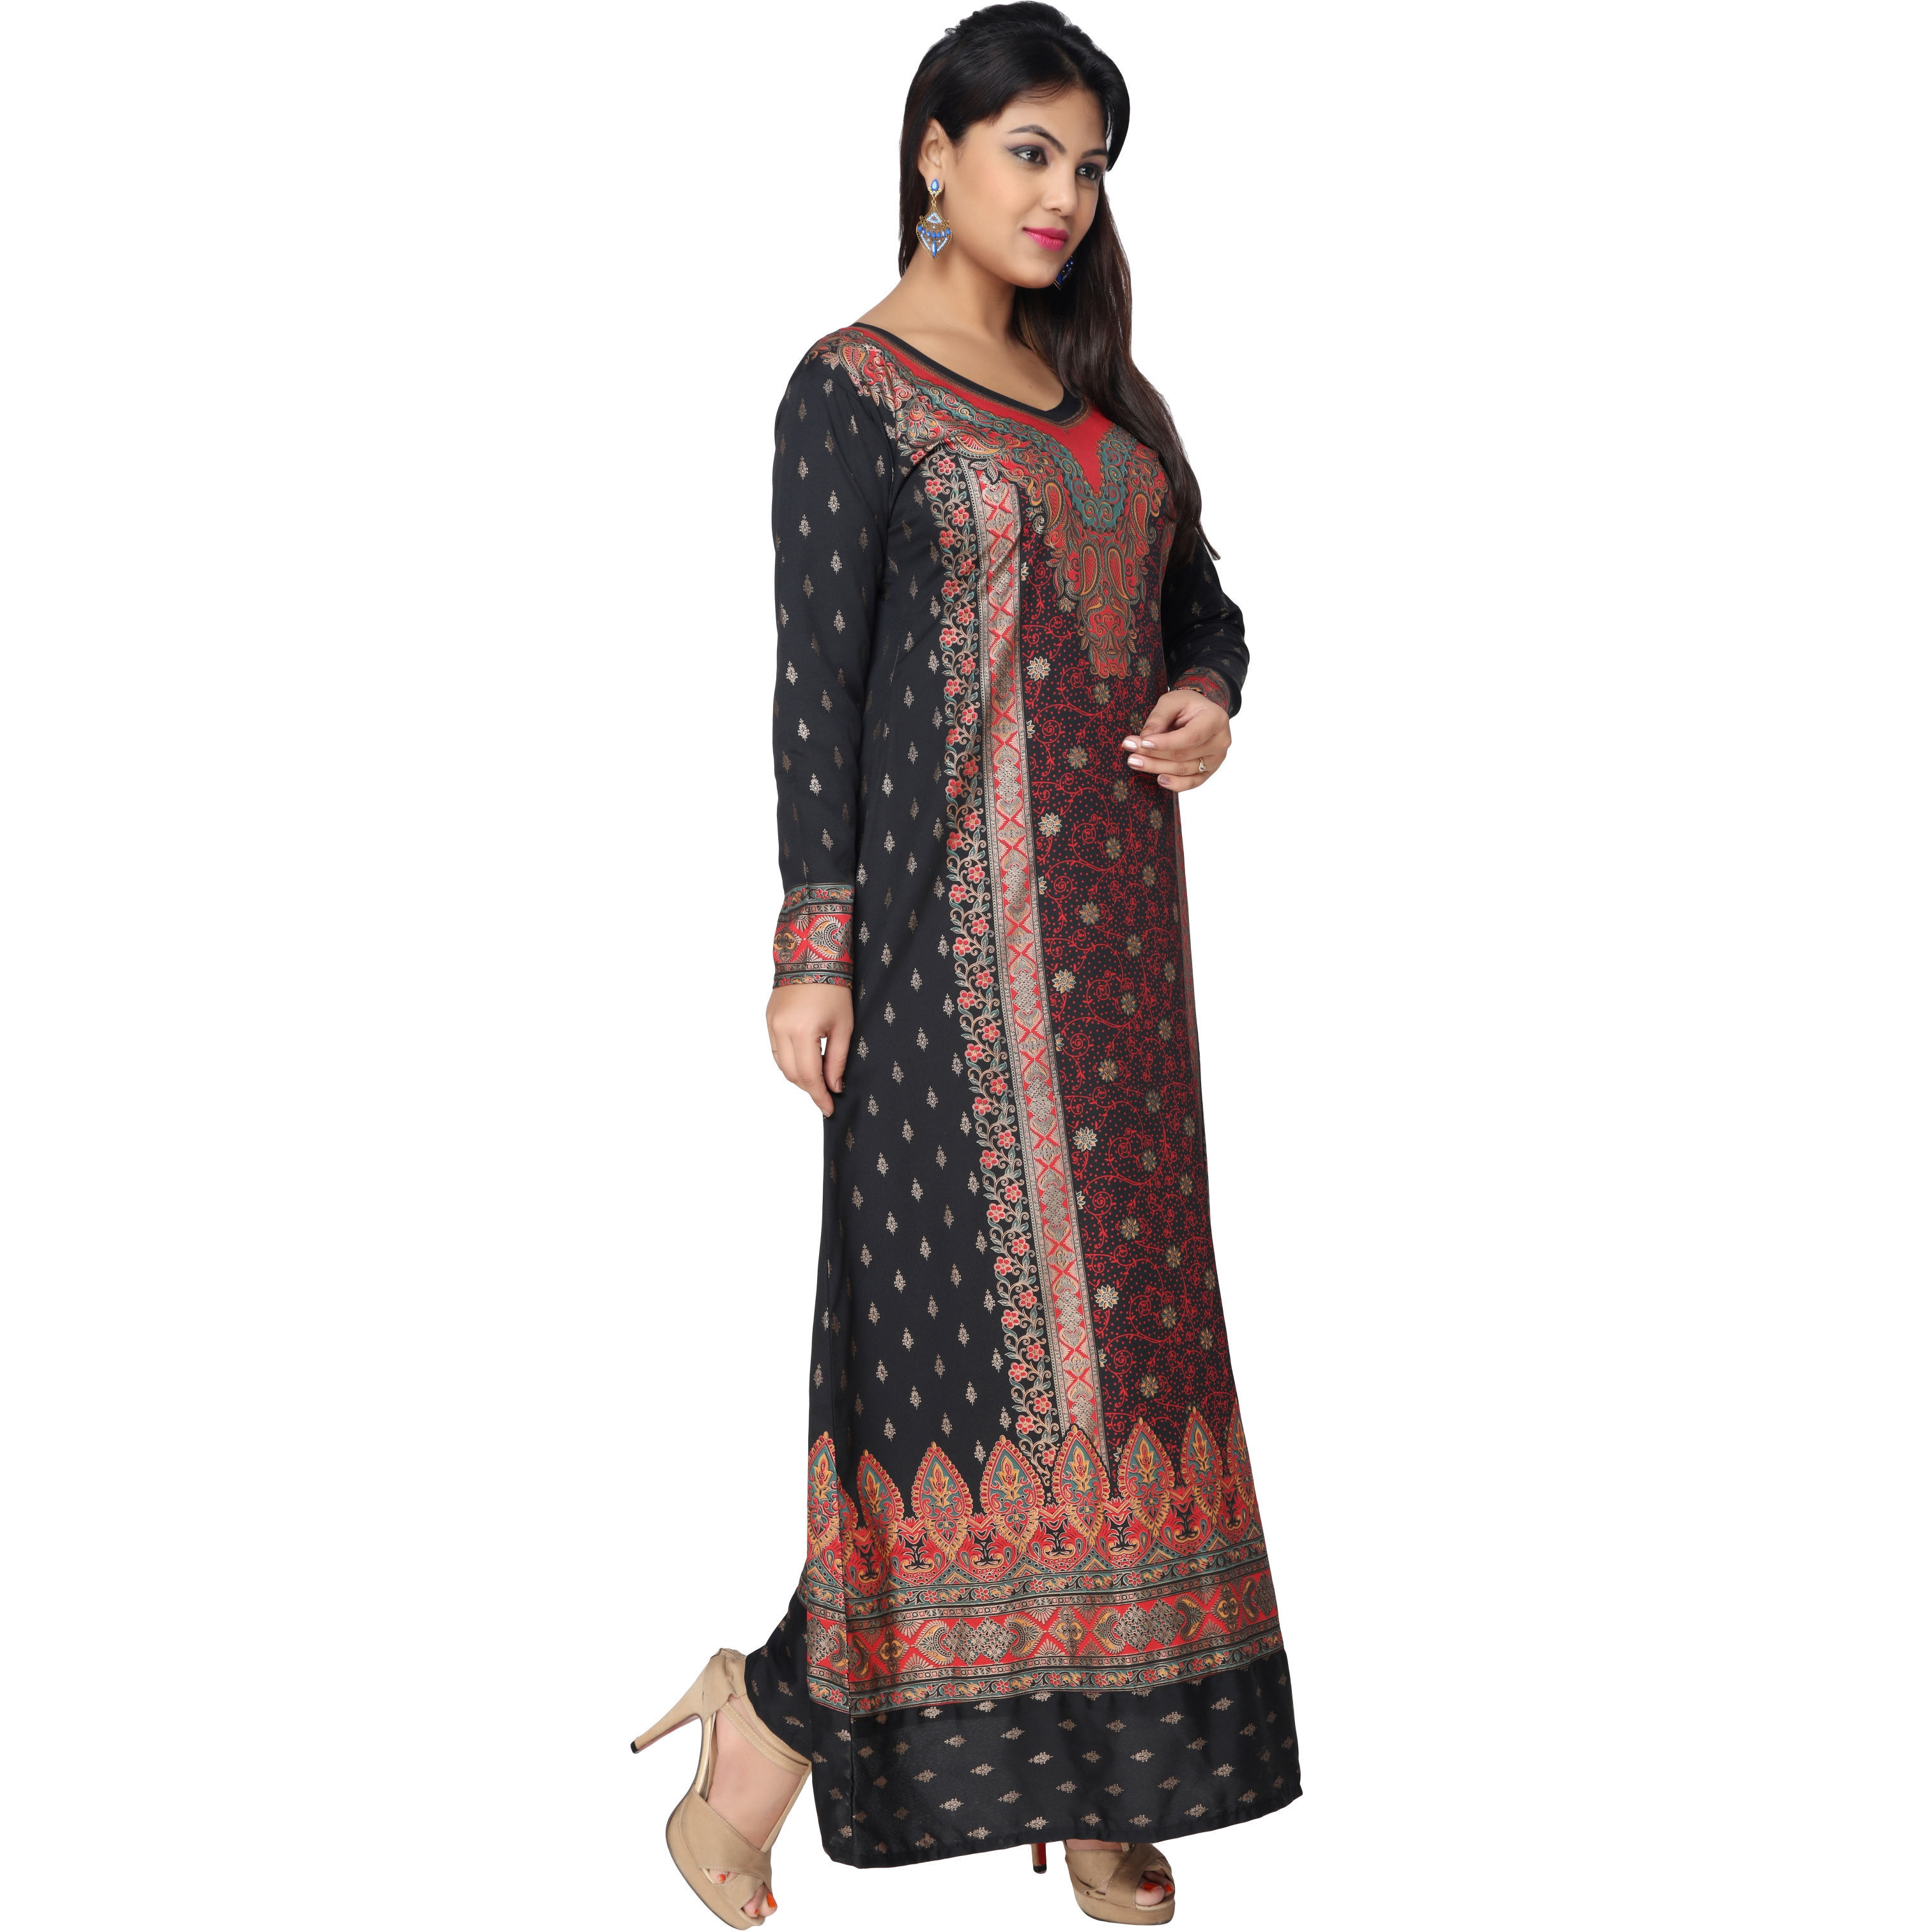 TrendyFashionMall Black-Red Gold Print Kaftan Abaya Maxi Dress KFT01031 S-38 (Size:42 - LARGE, Color:TFMKFT01031-BLACK-RED)